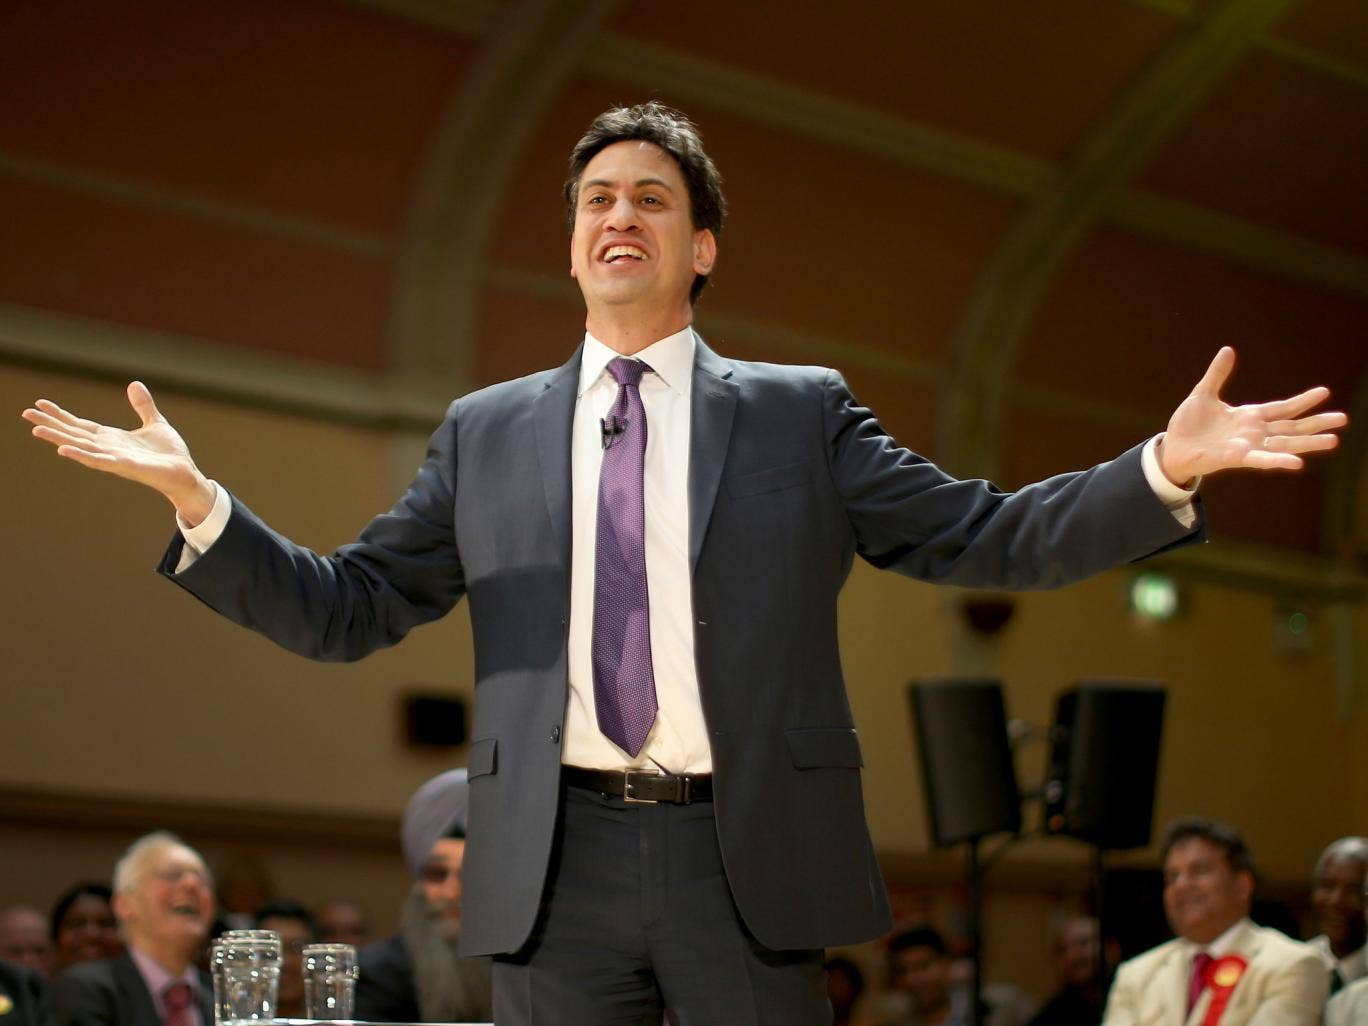 Labour Party Leader Ed Miliband speaks to supporters at Bloxwich Leisure Centre on May 19, 2014 in Walsall, England. During his speech Mr Miliband said that a future Labour government would set a statutory minimum wage target linked to average earnings. T